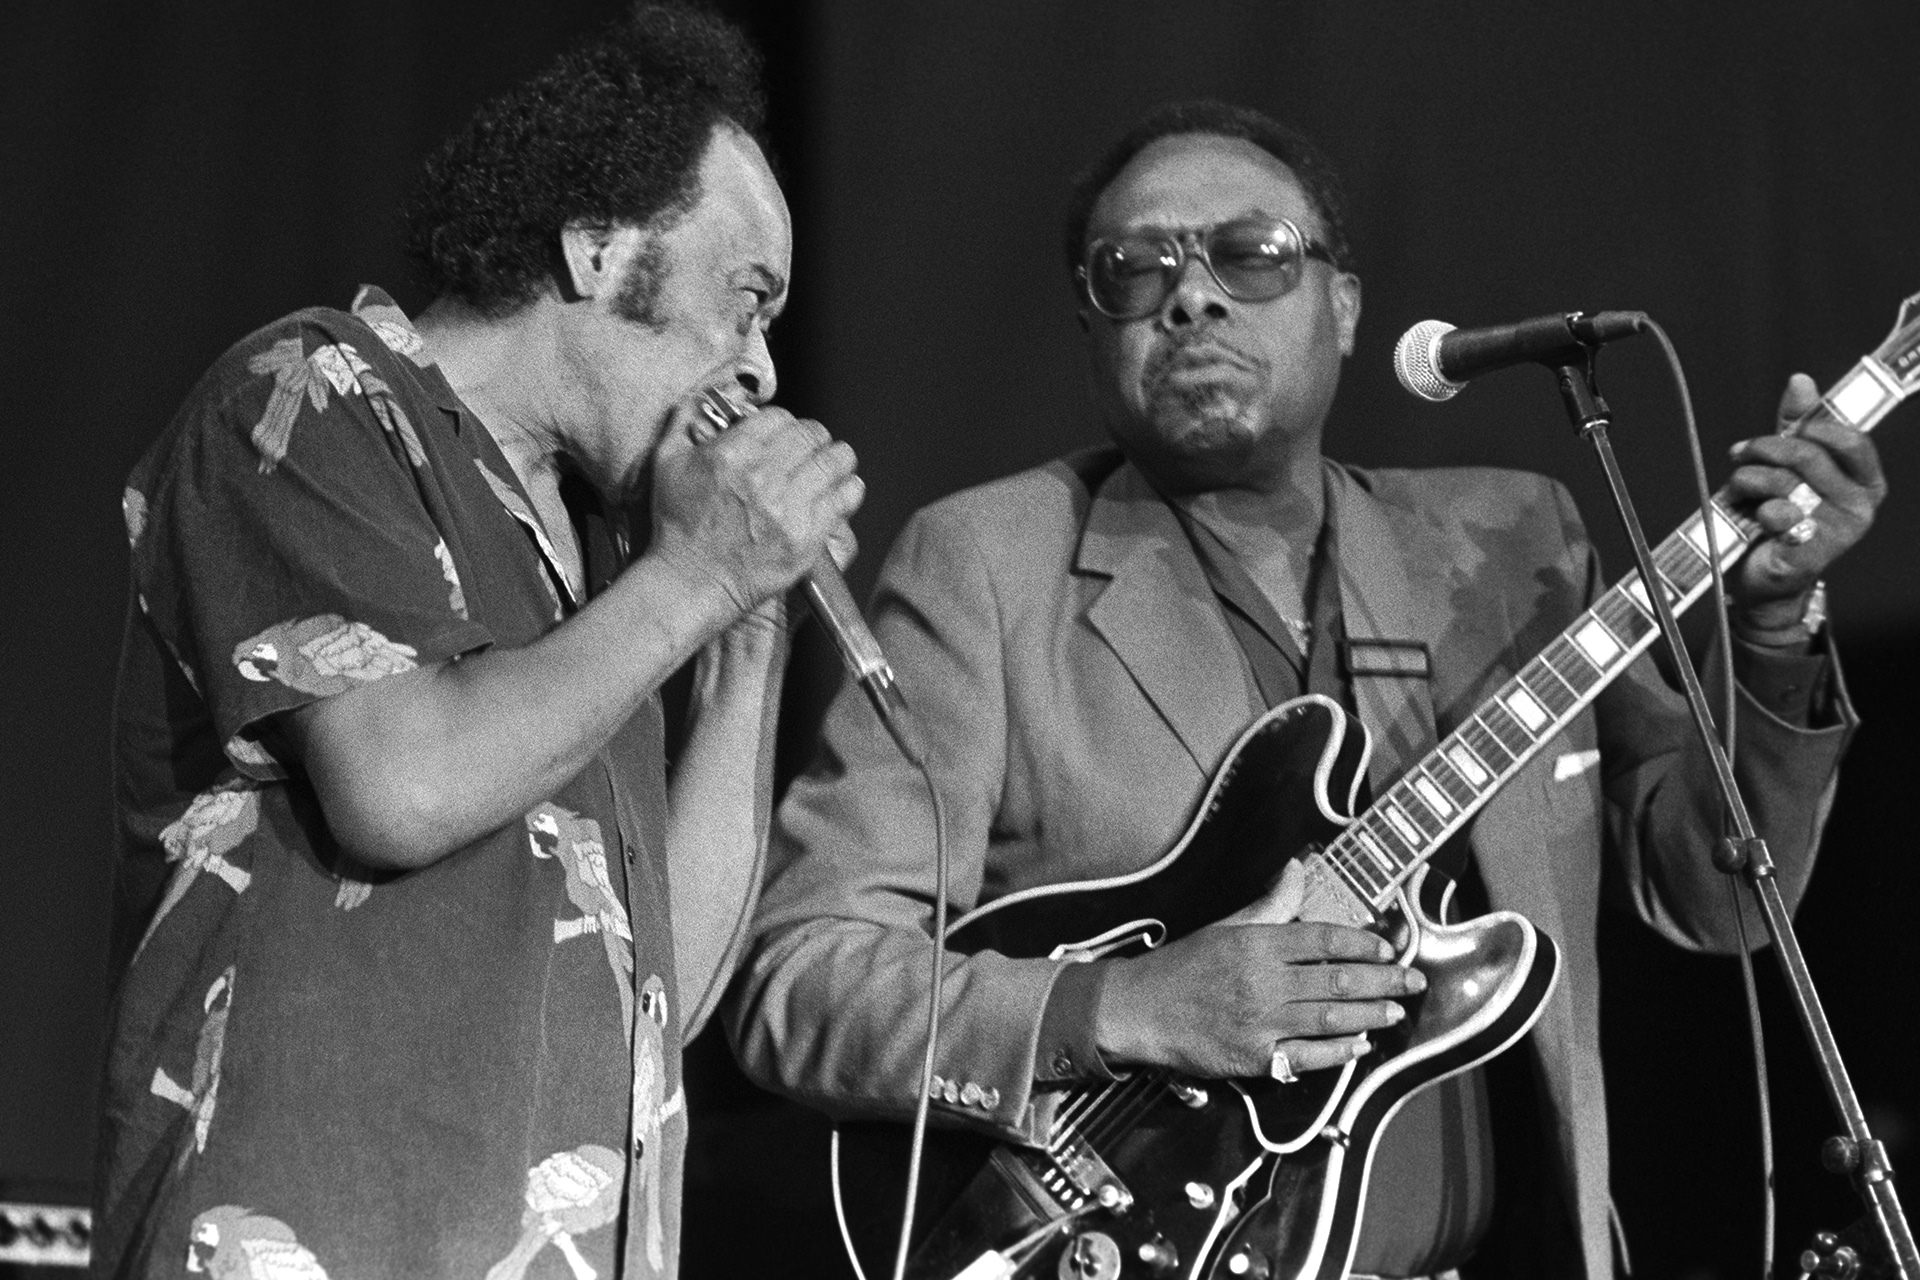 Picture of two musicians by Kirk West